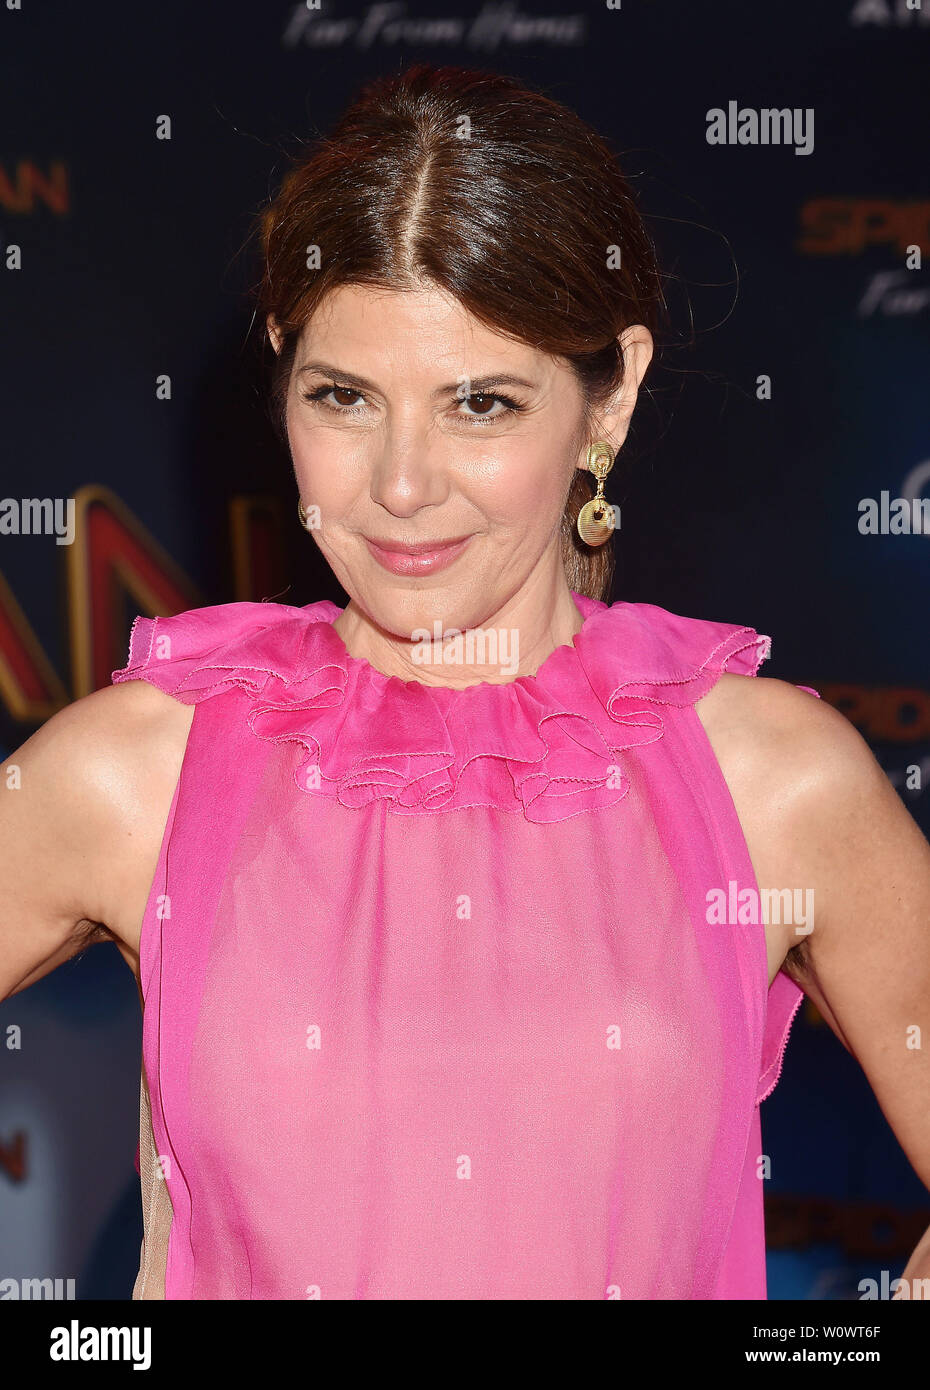 HOLLYWOOD, CA - JUNE 26: Marisa Tomei attends the premiere of Sony Pictures' 'Spider-Man Far From Home' at TCL Chinese Theatre on June 26, 2019 in Hollywood, California. - Stock Image